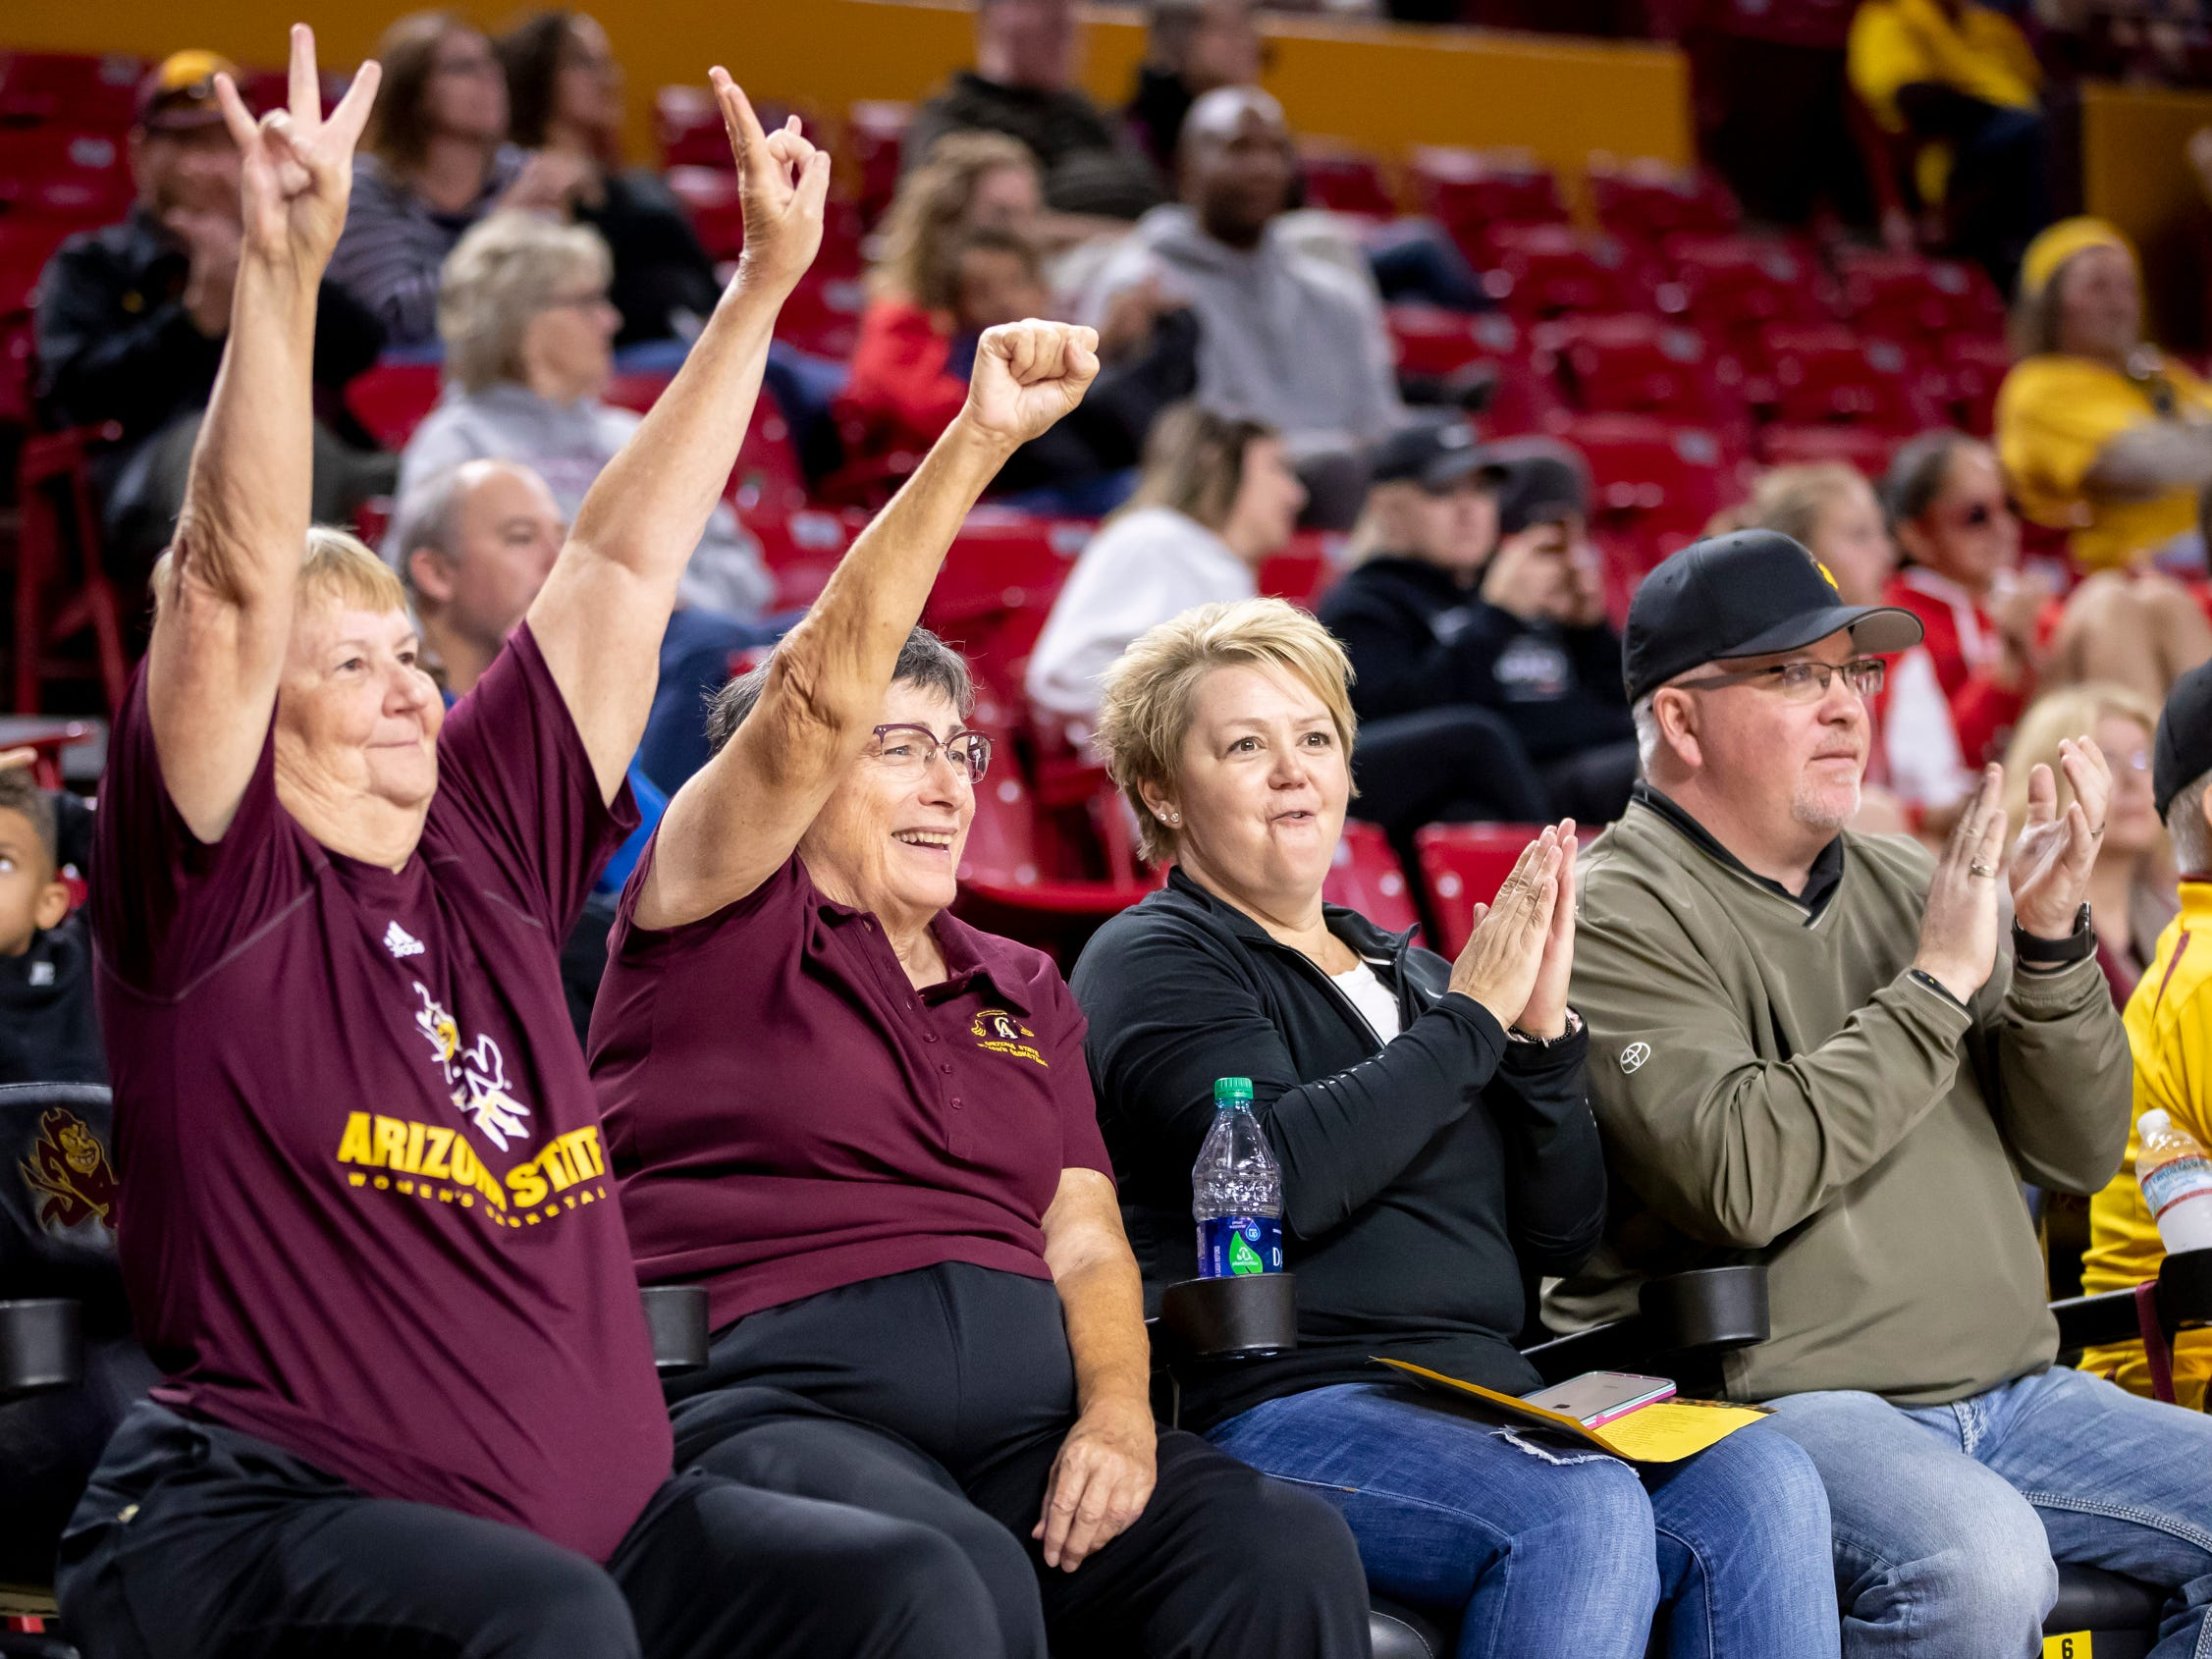 Arizona State Sun Devil fans cheer during the game against Tulsa Golden Hurricane at Wells Fargo Arena on Sunday, December 2, 2018 in Tempe, Arizona.